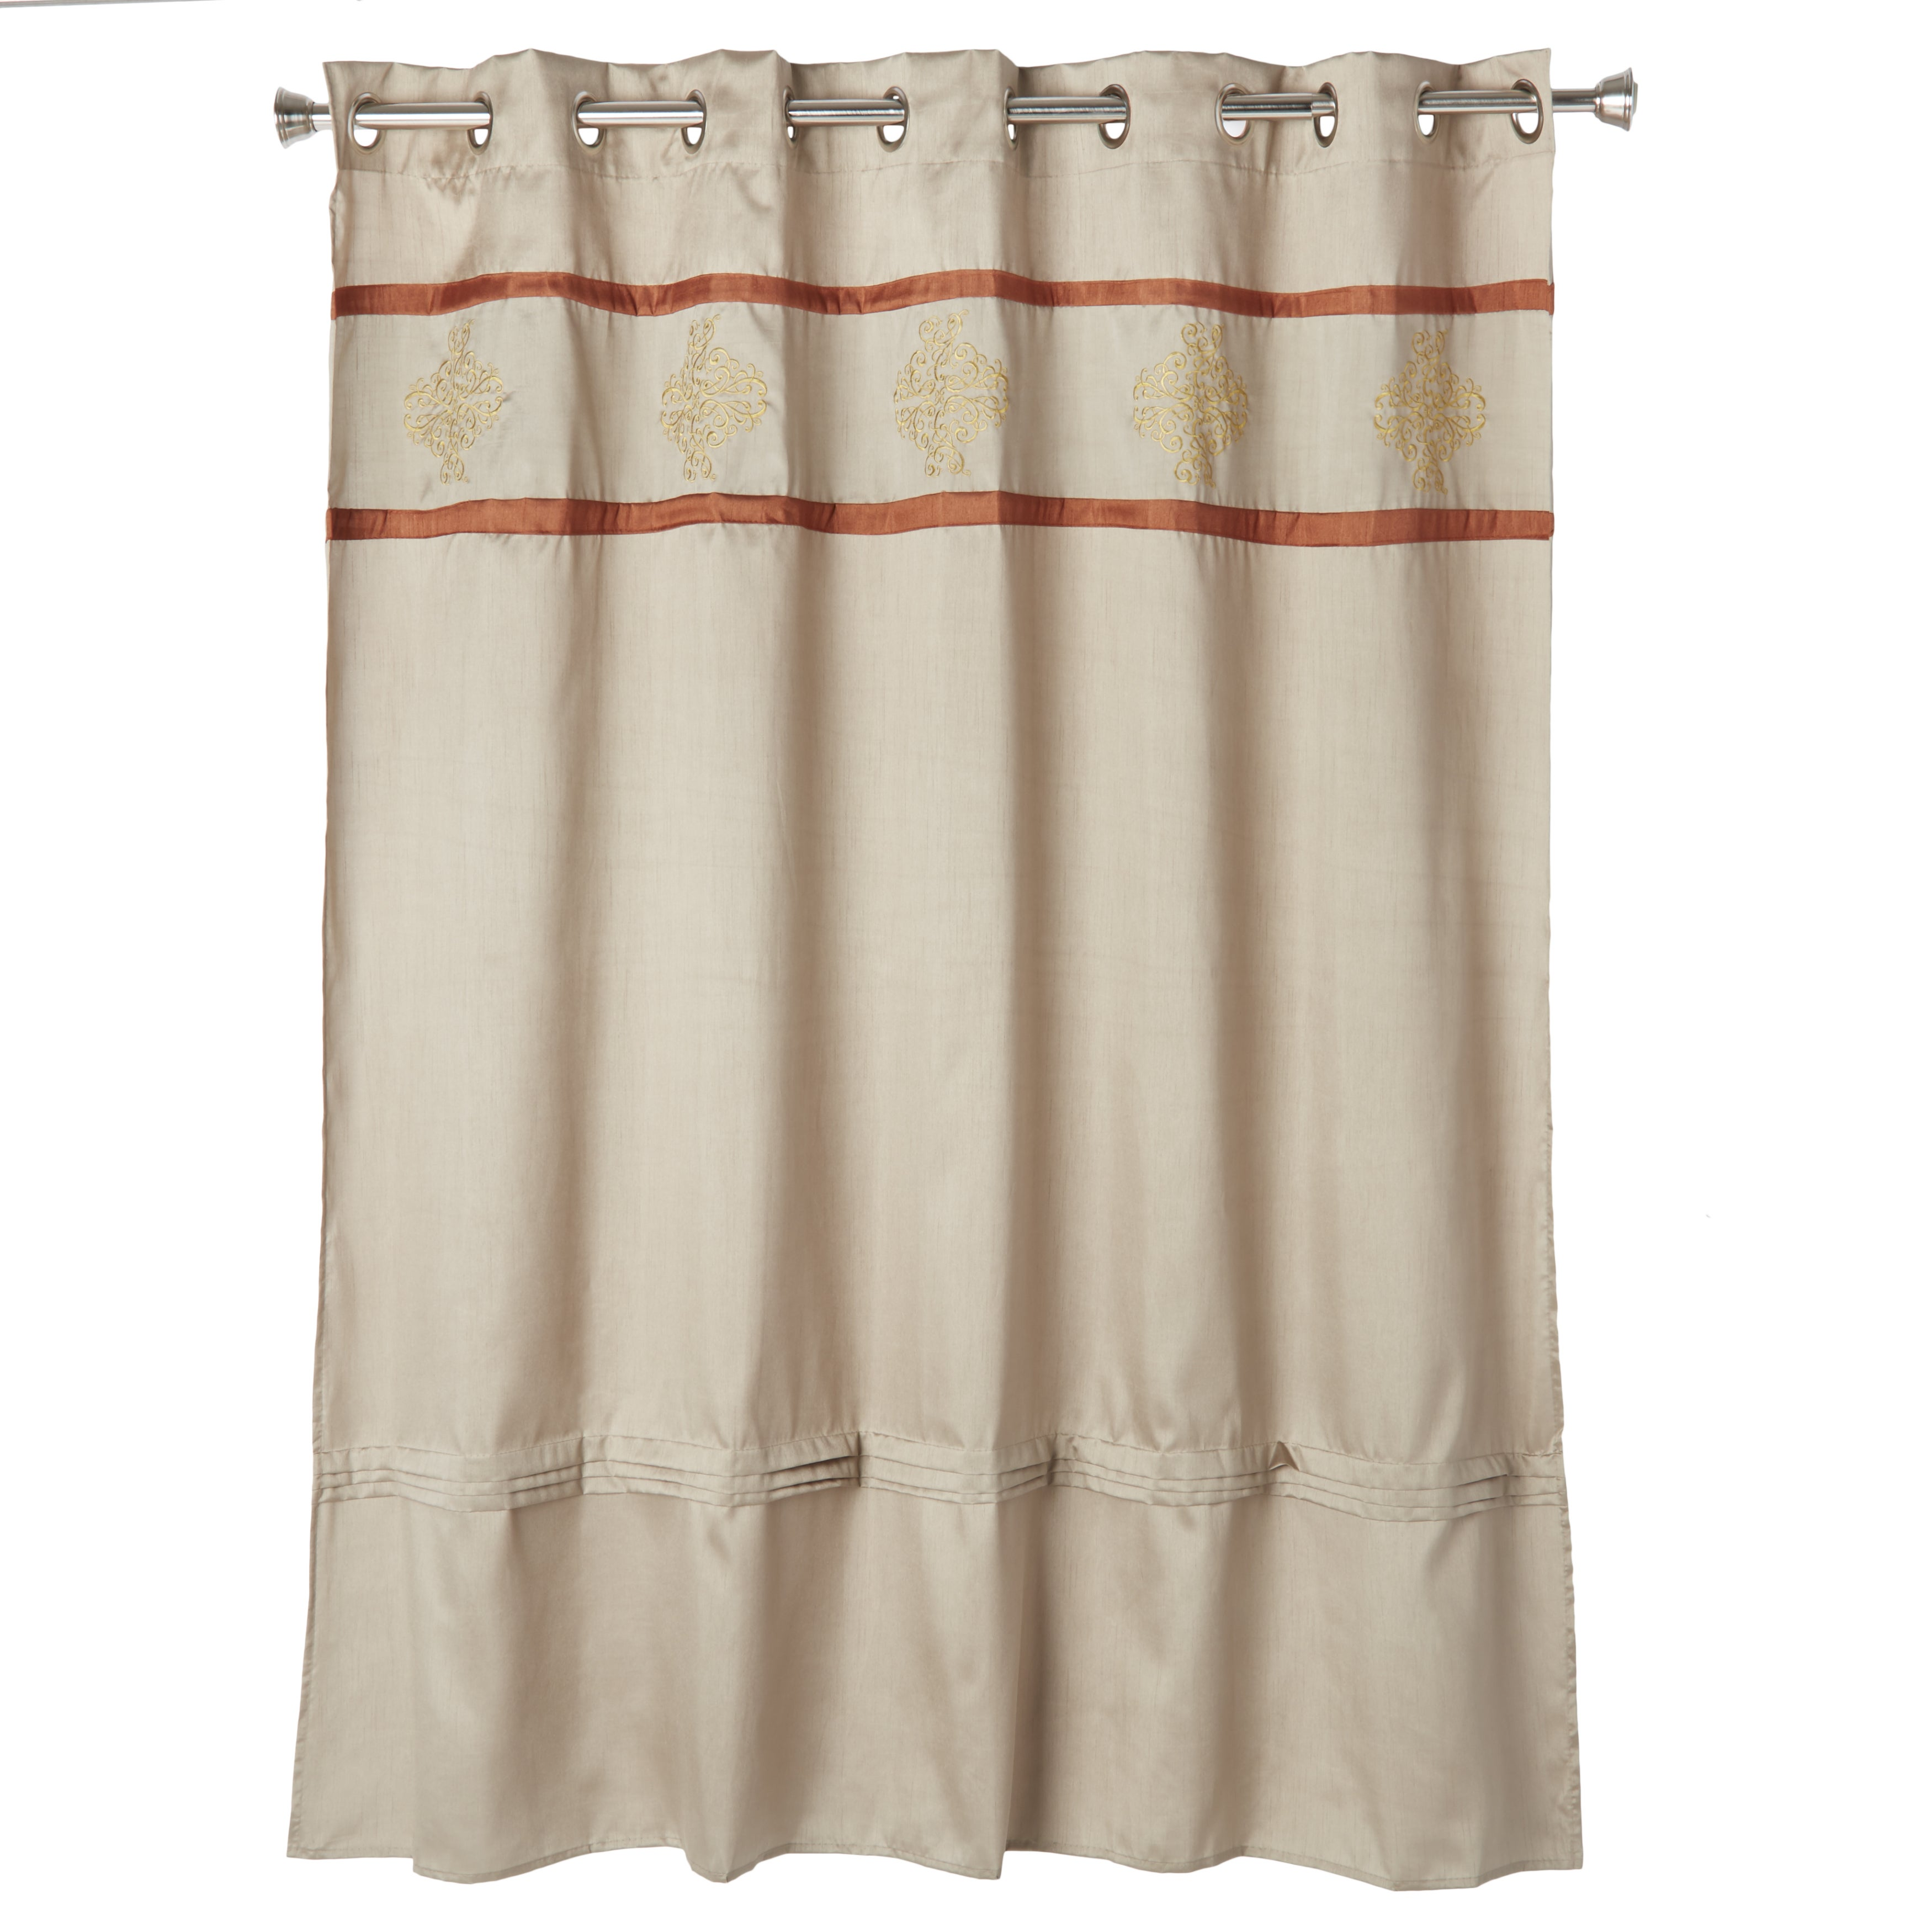 Shop Windsor Home Radcliff Embroidered Shower Curtain With Grommets